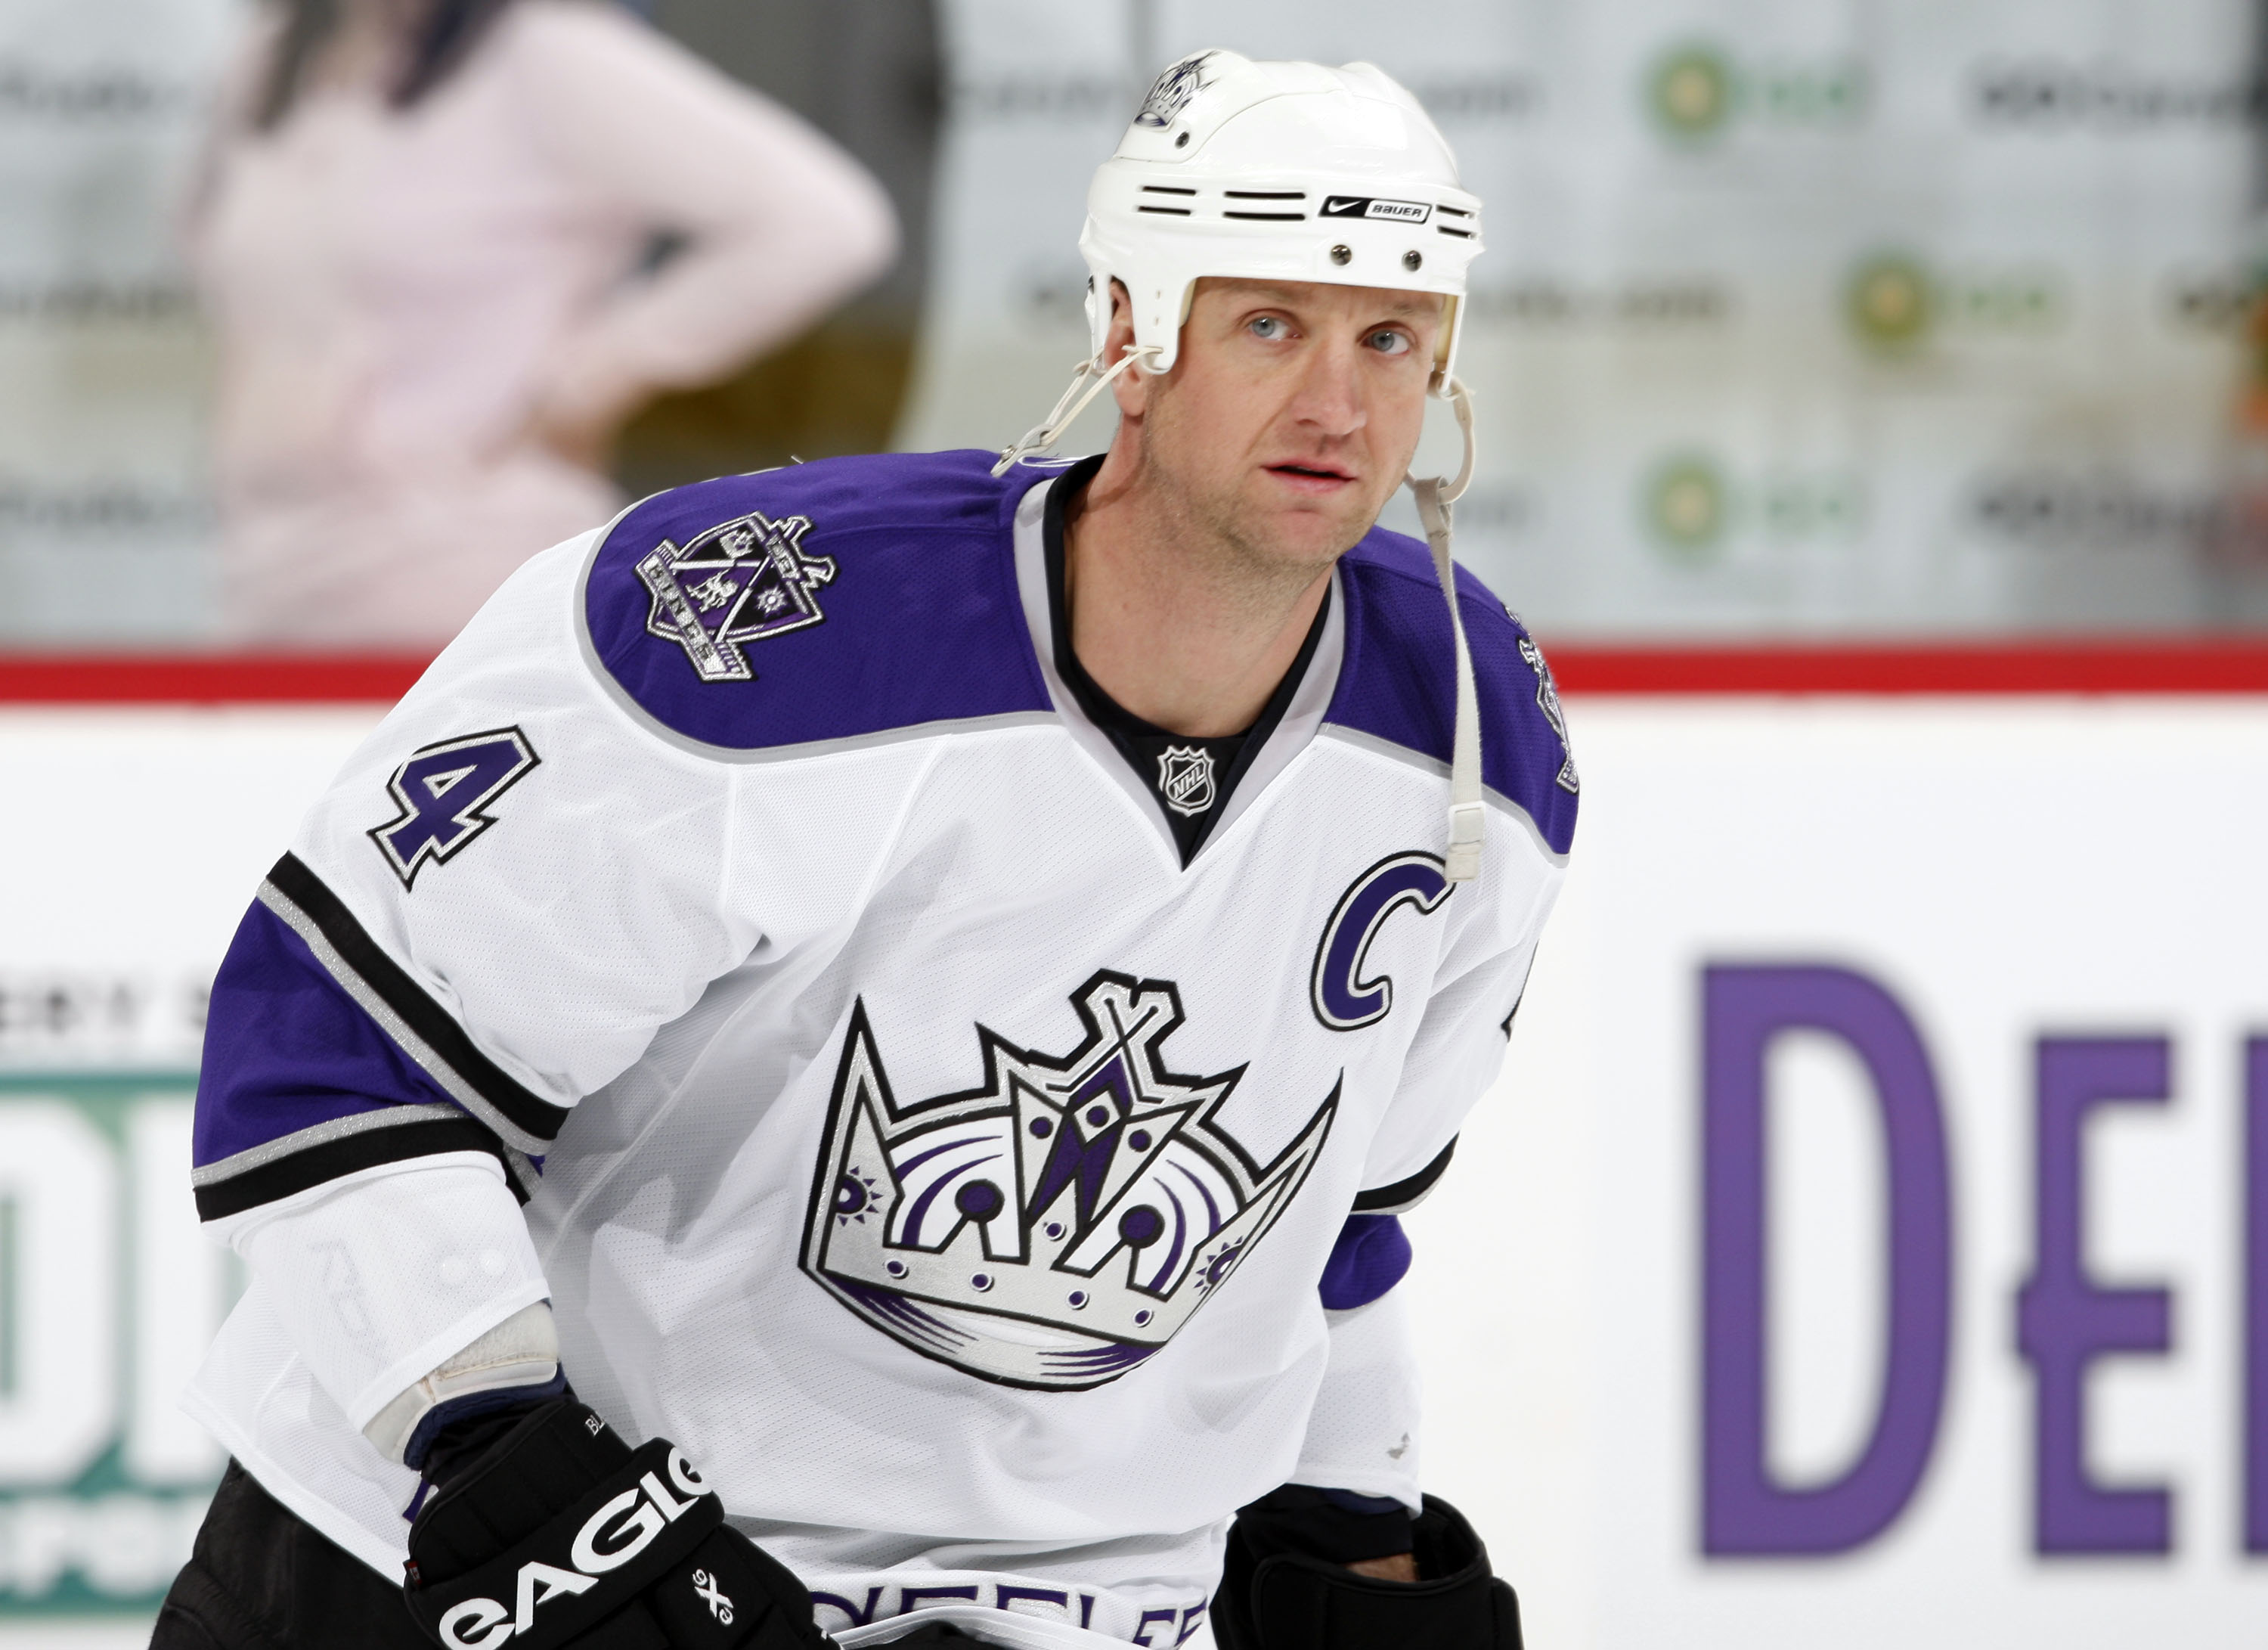 Los Angeles Kings defenseman Rob Blake warms up before facing the Colorado Avalanche in the first period of an NHL hockey game in Denver on Saturday, March 1, 2008